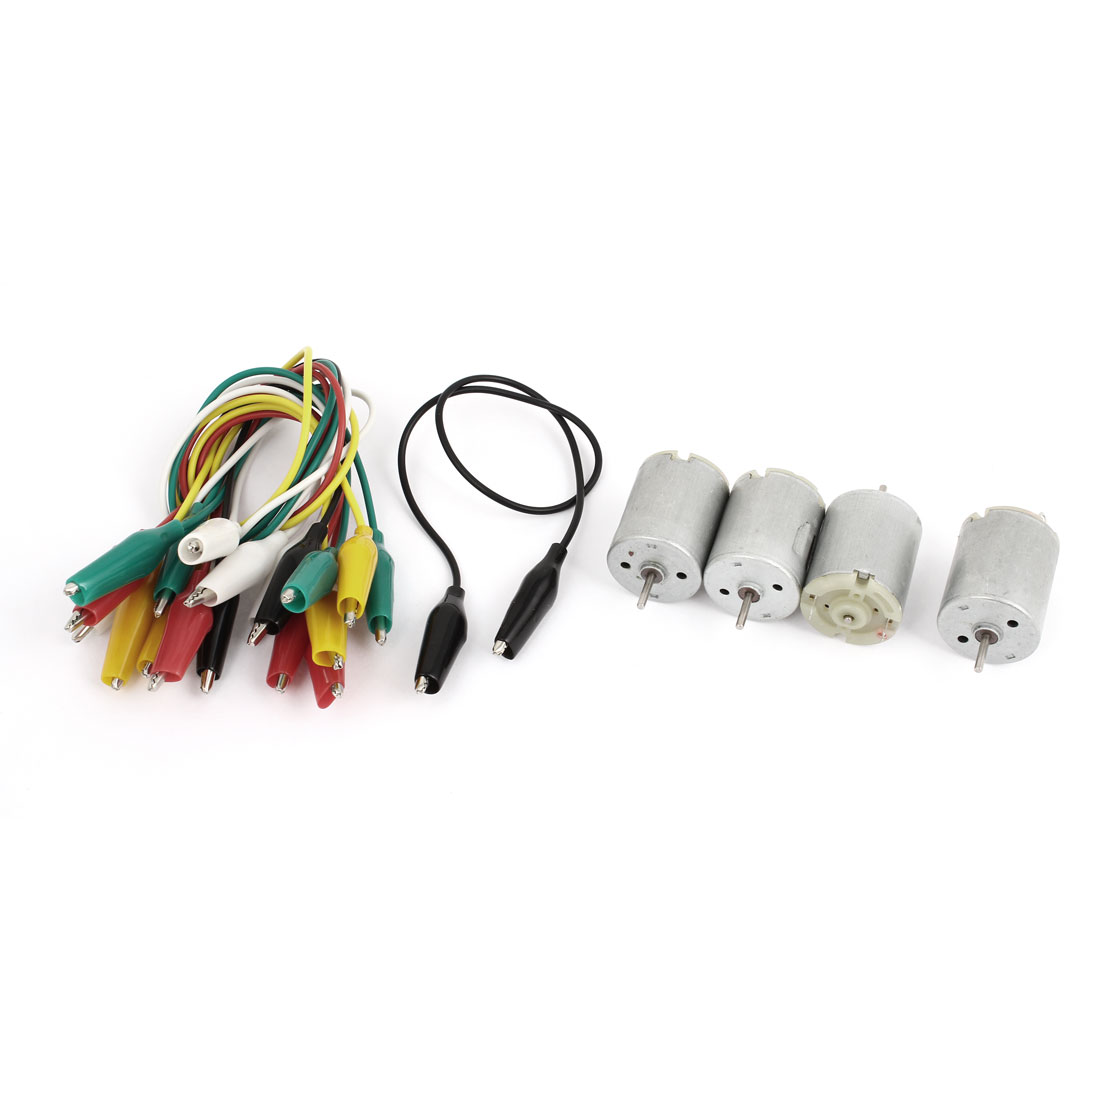 4Pcs DC 6V 9000RPM 2 Terminals Type 280 Miniature Mini Motor w Alligator Clip Cable